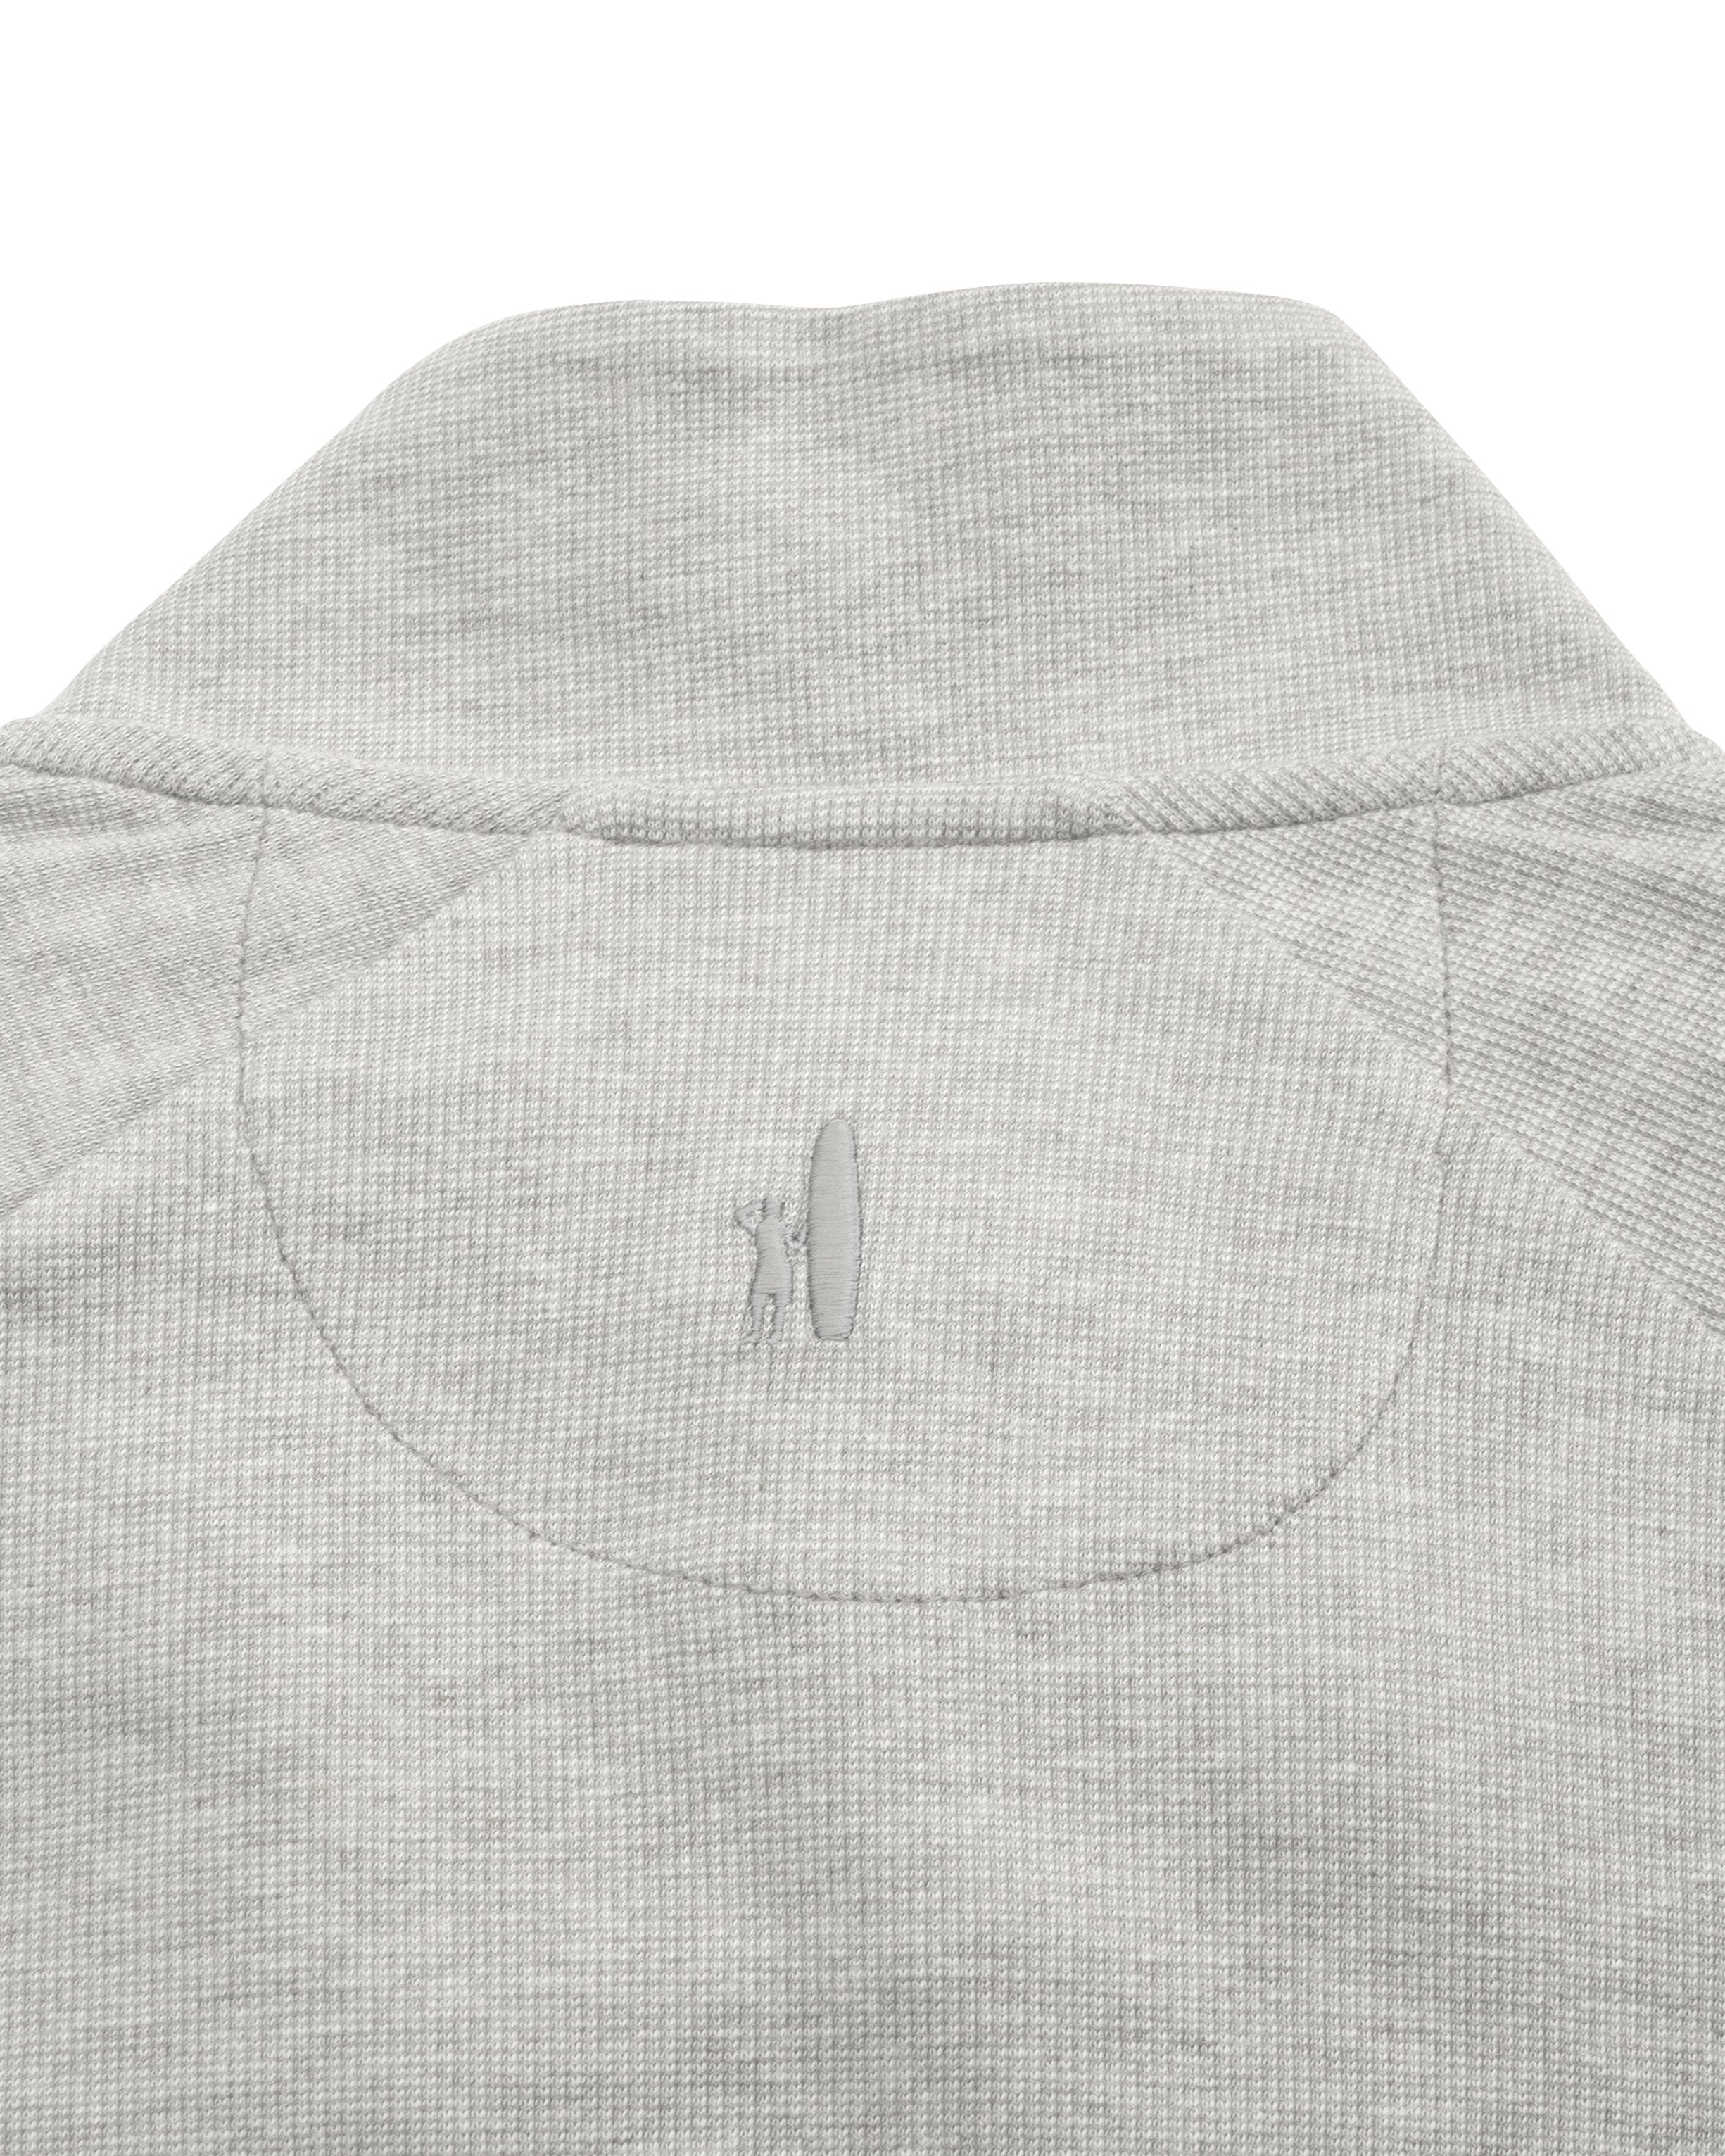 Whaling Henley Pullover in Light Gray